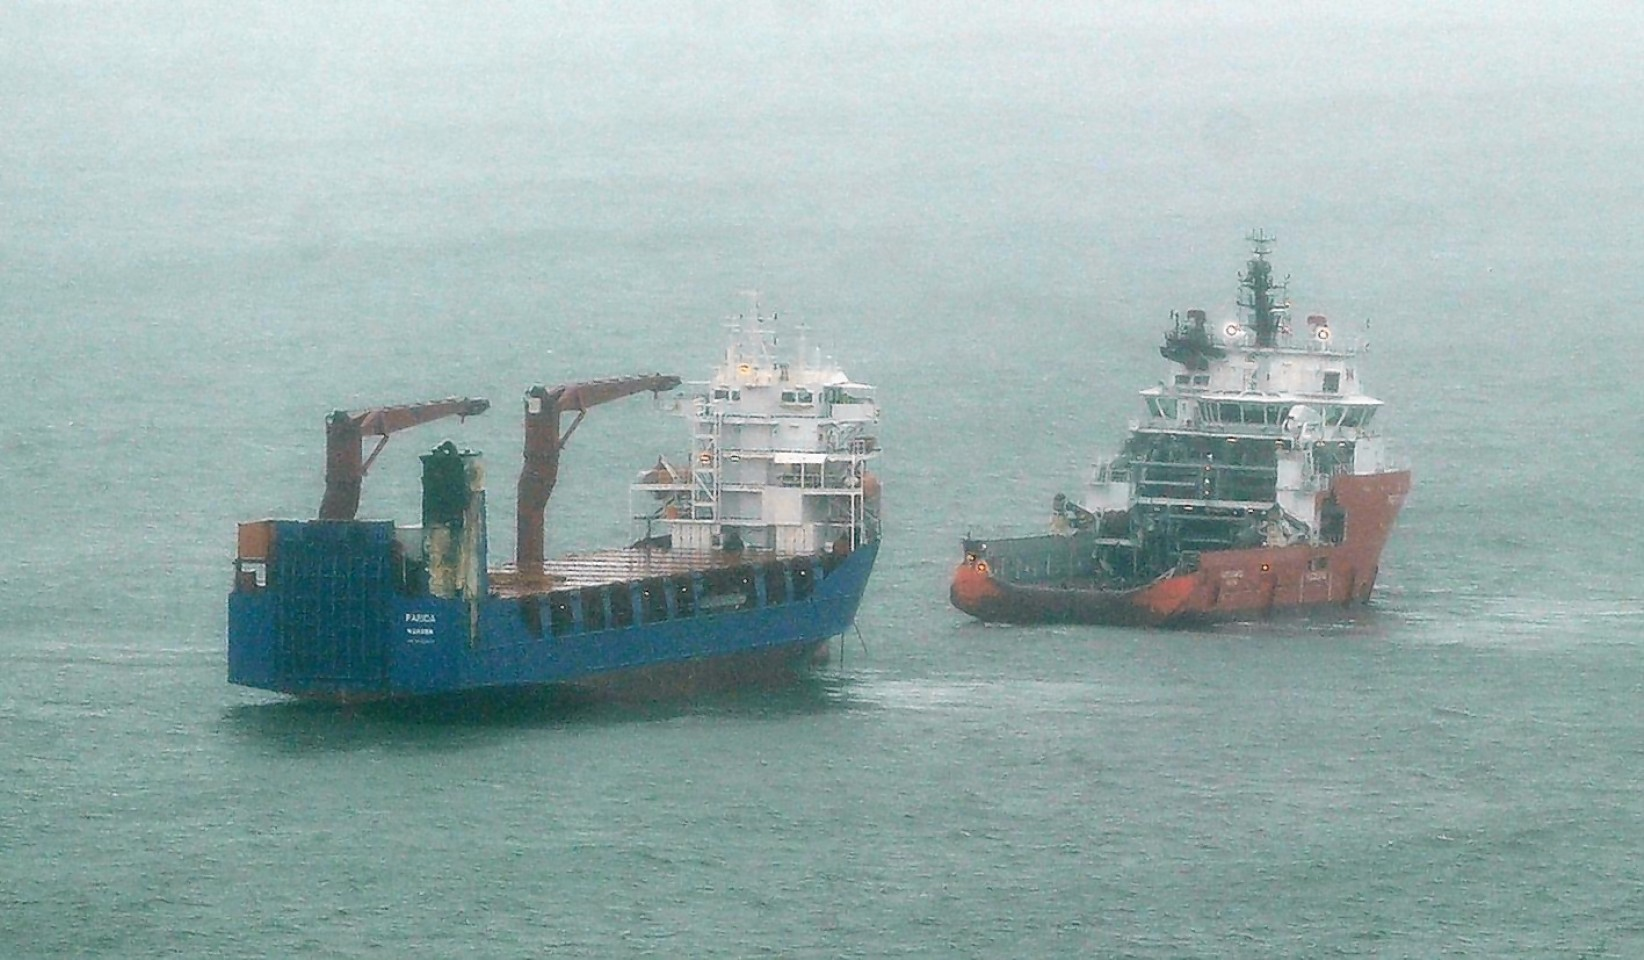 The Parida being towed to safety